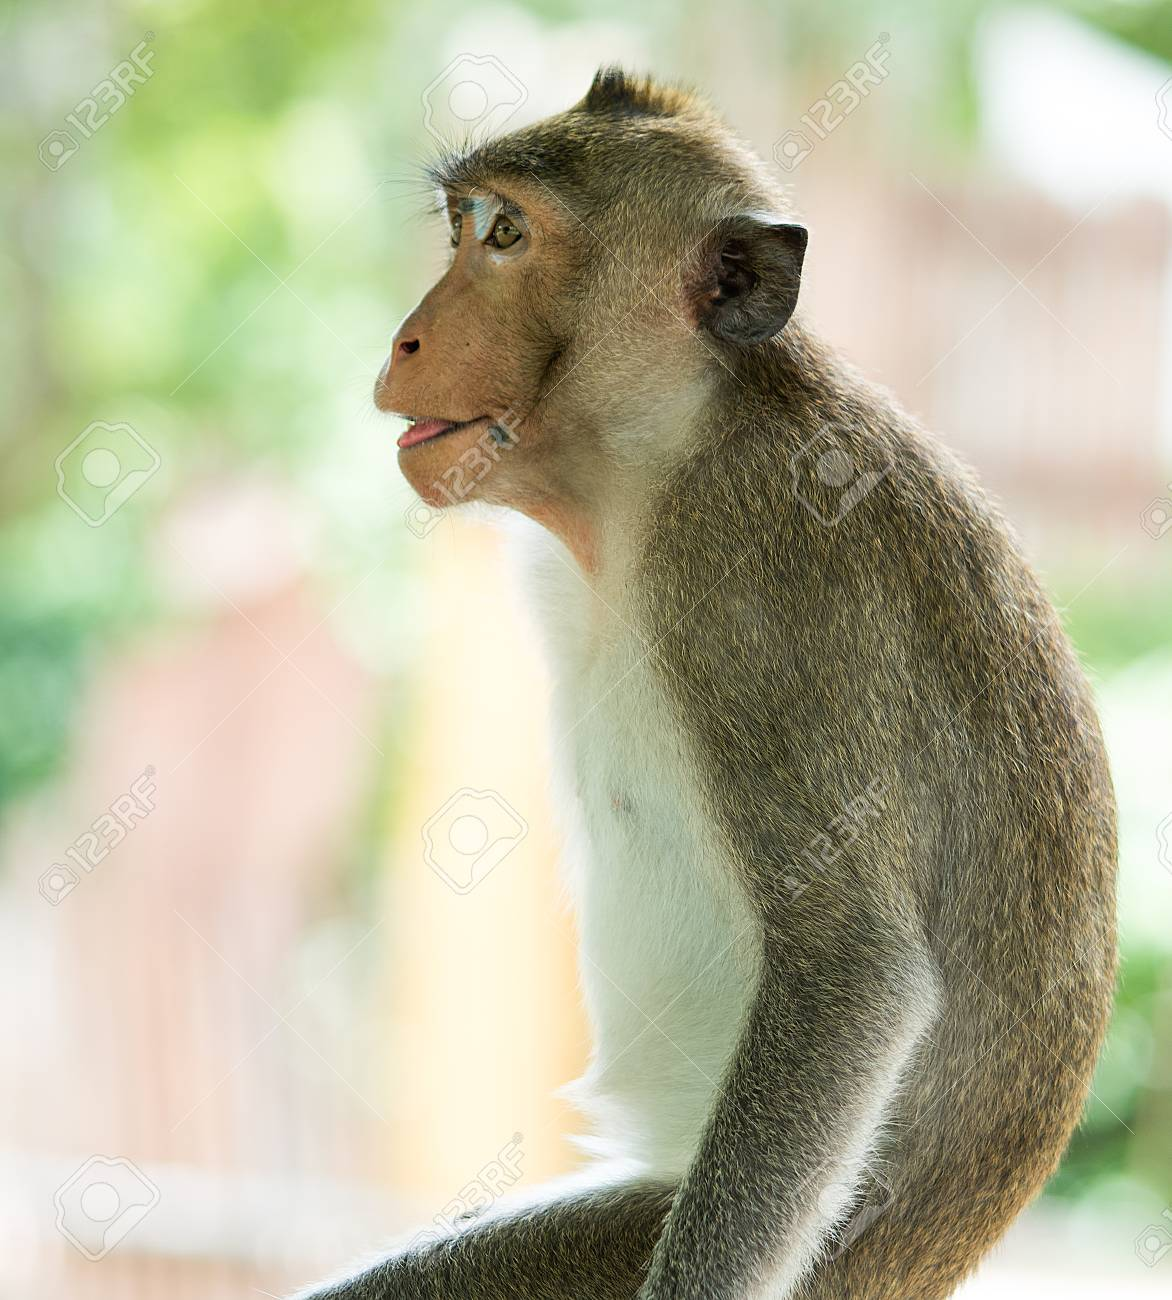 Stock Photo - The brown monkey has a black mole on the lips is waiting for  a friend